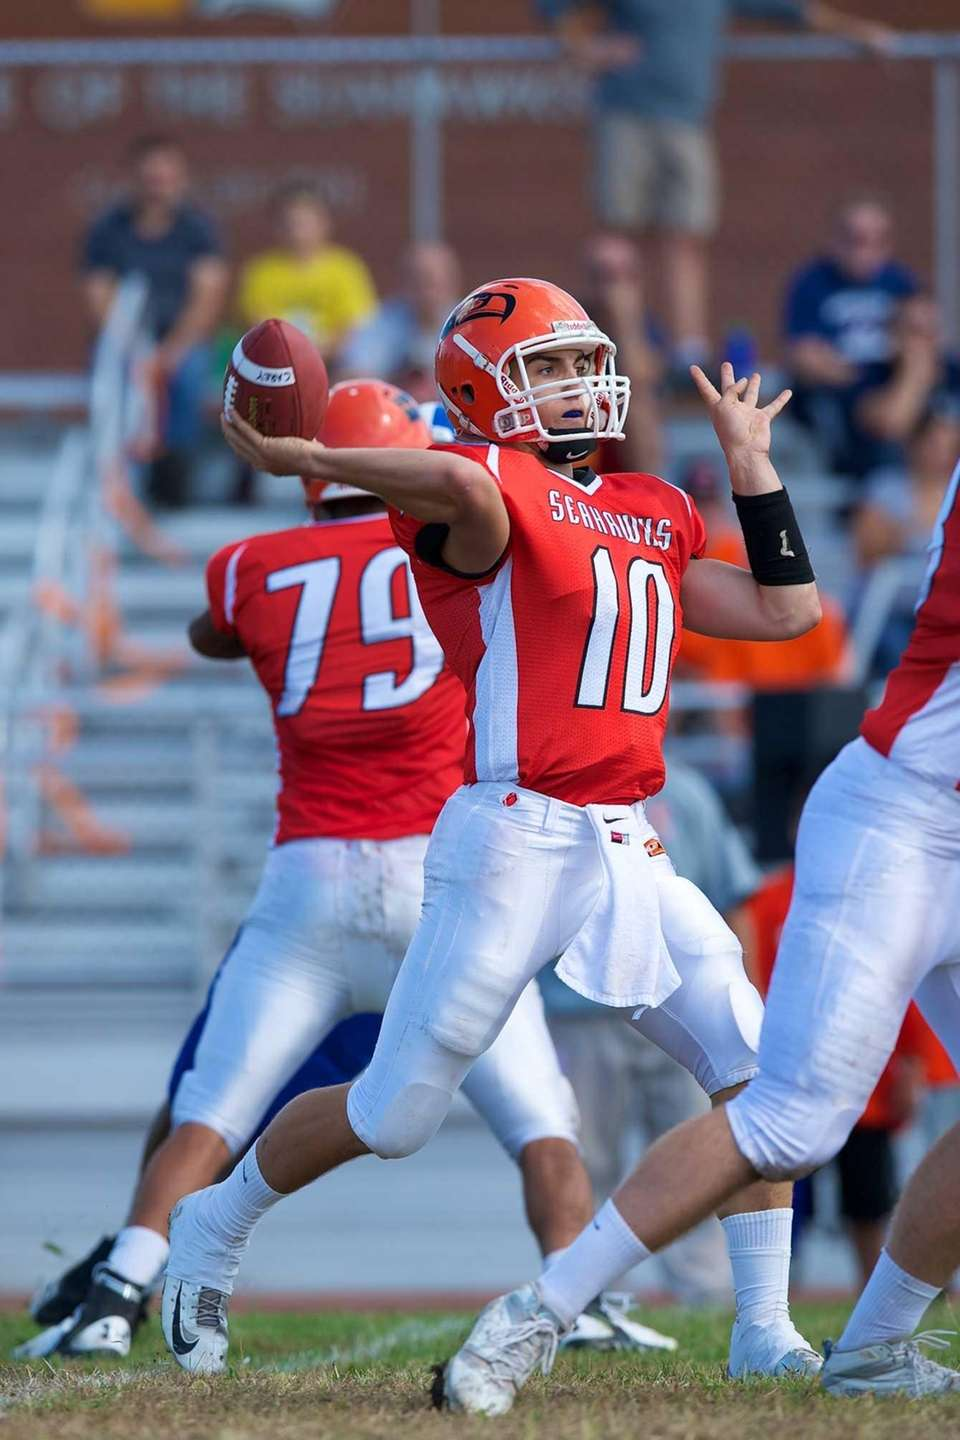 Carey quarterback Ray Catapano (10) looks to pass